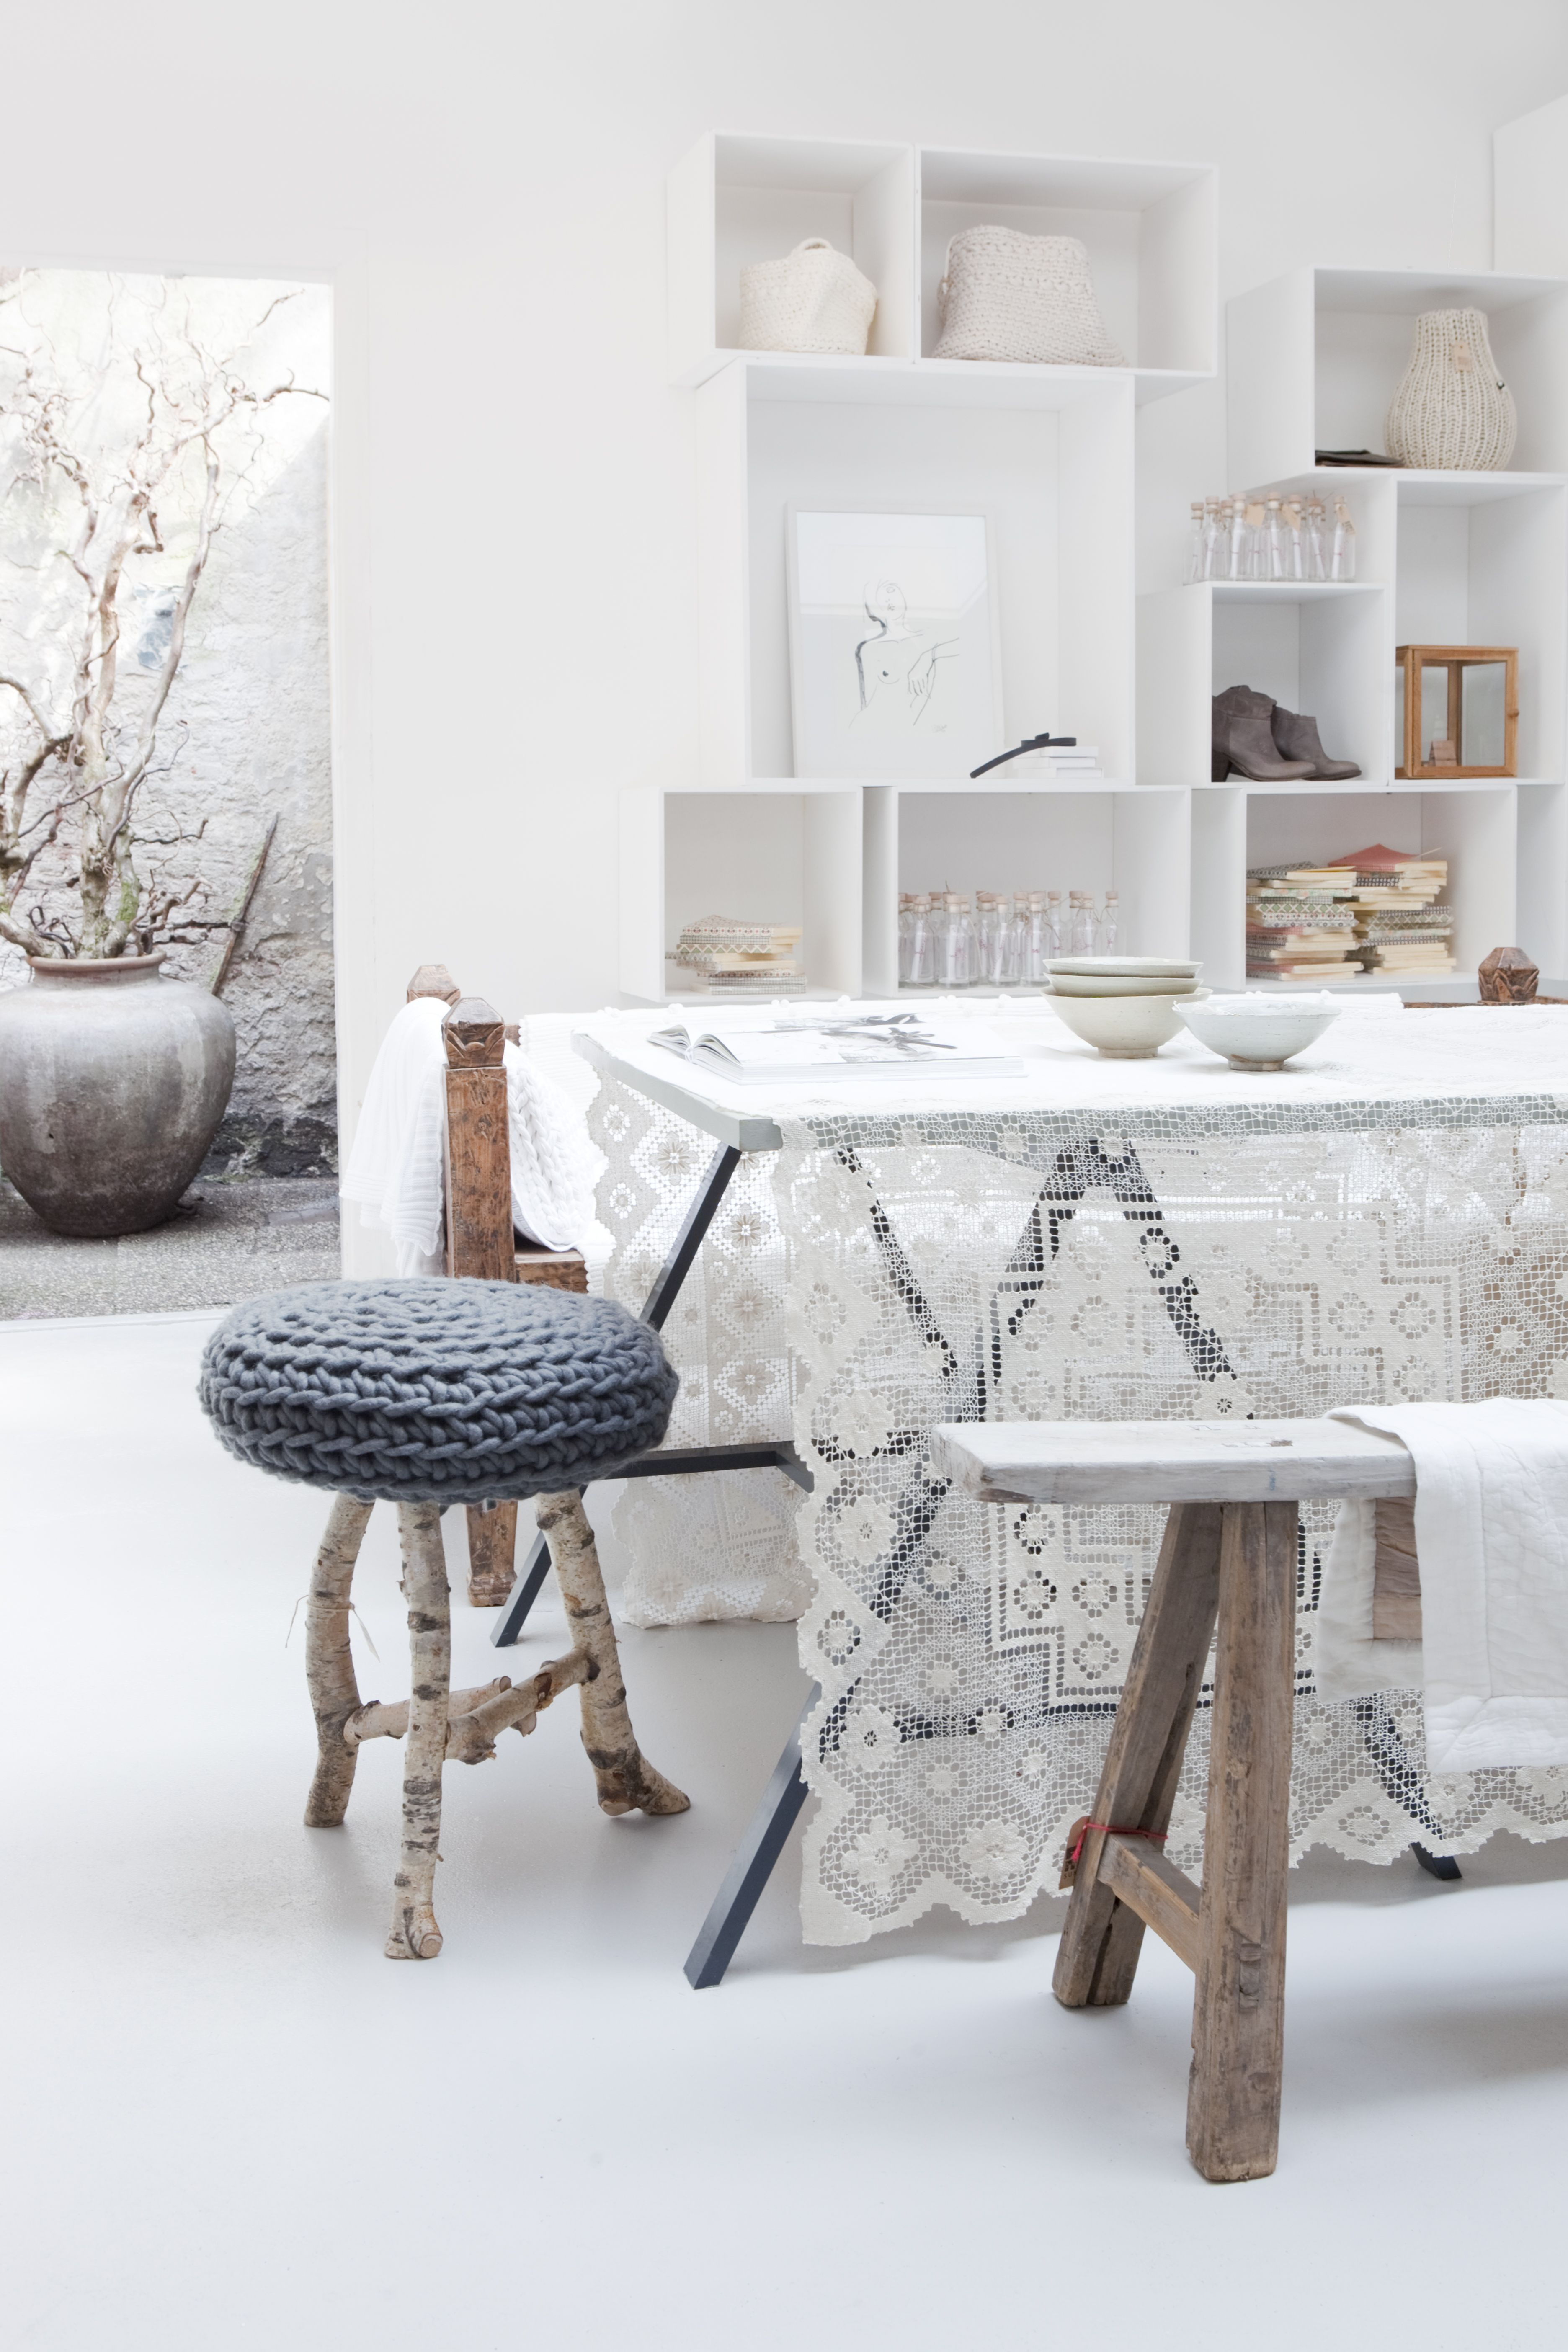 Sukha Amsterdam, over our modern black table, could look awesome, OR like someone was in the process of packing old textiles away?